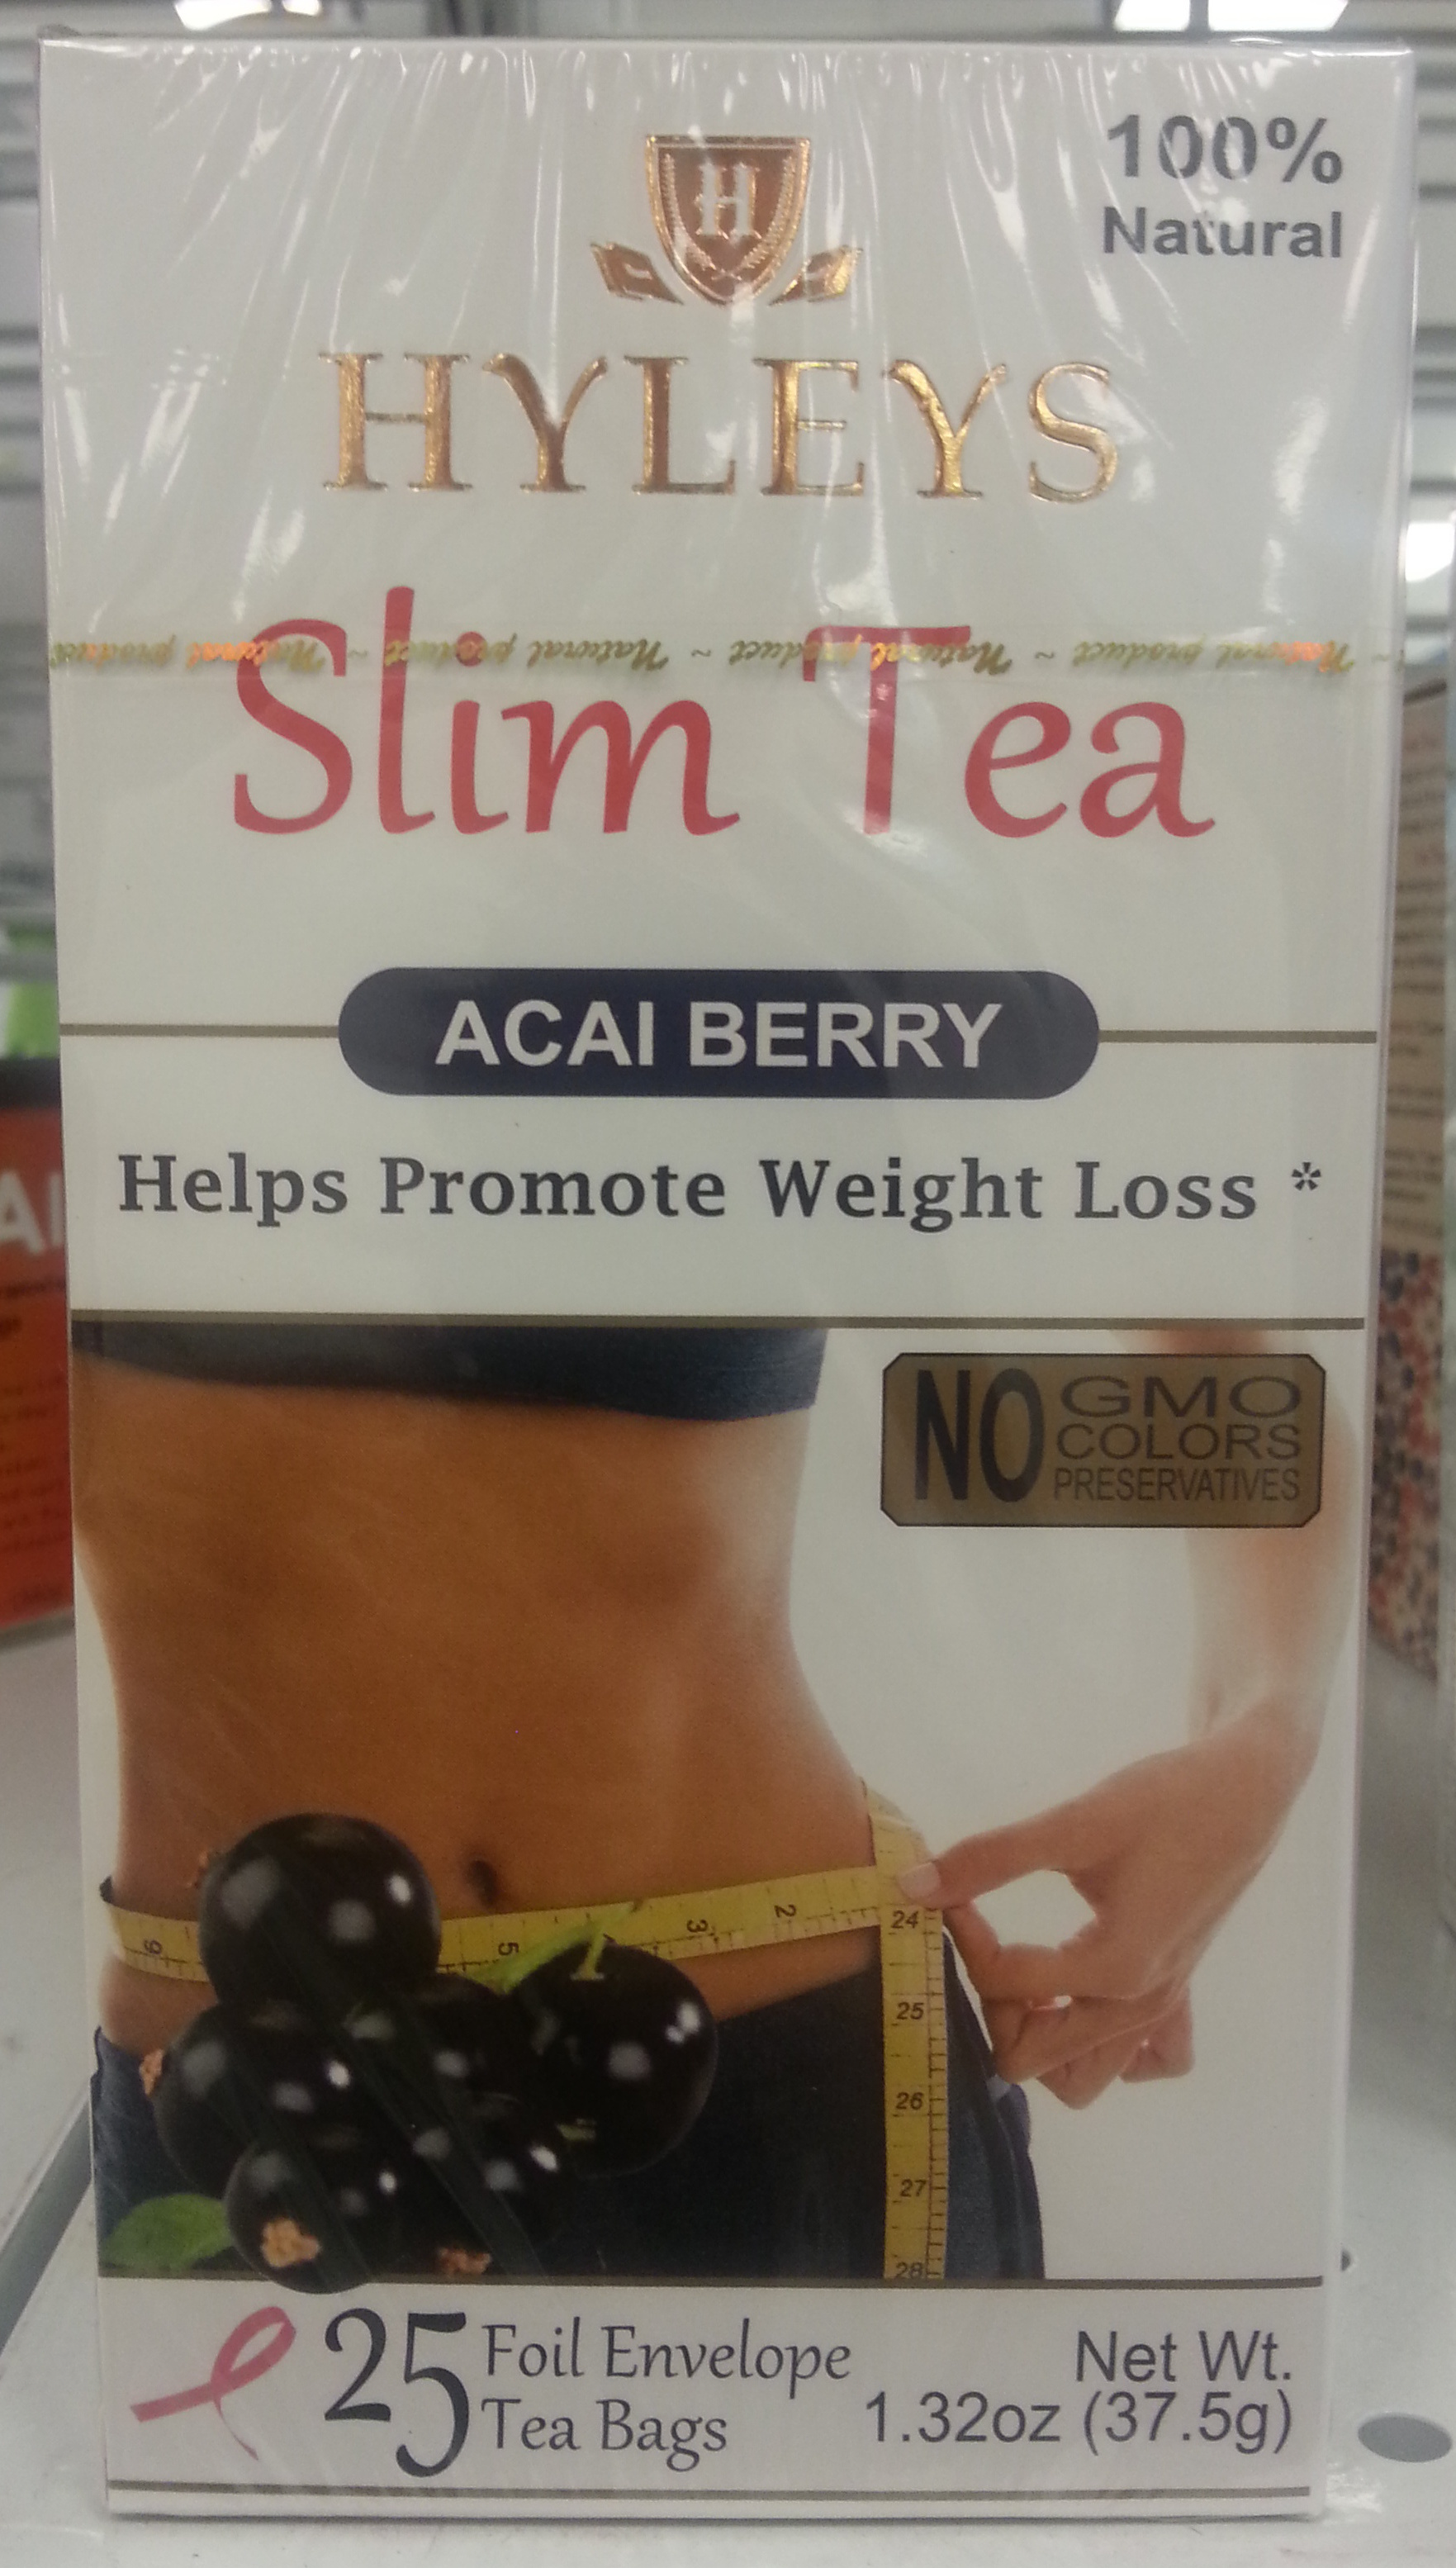 Slim Tea Acai Berry - Product - en